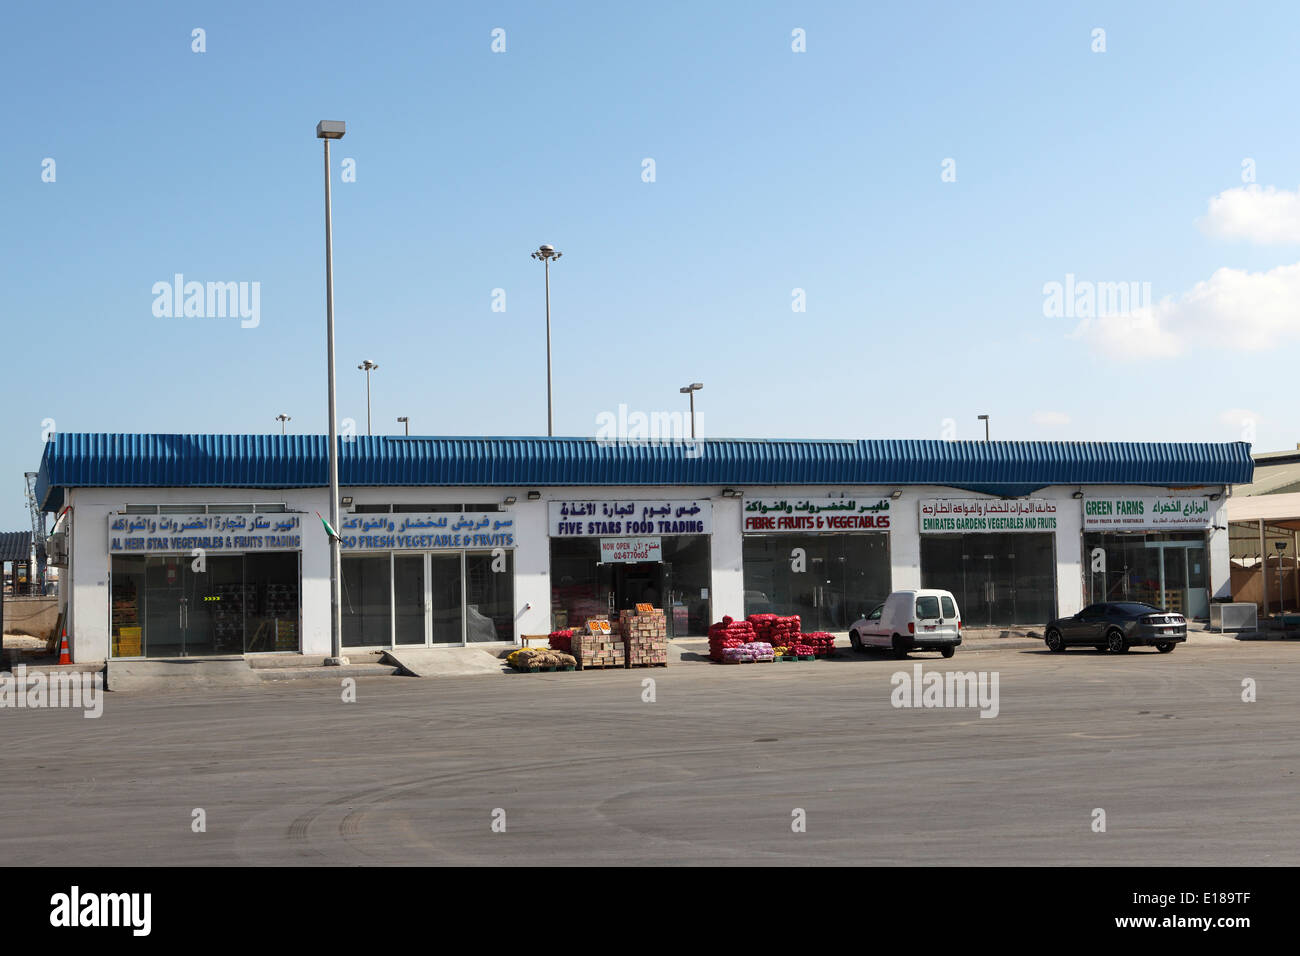 The fruit and vegetable market in Abu Dhabi Stock Photo: 69639487